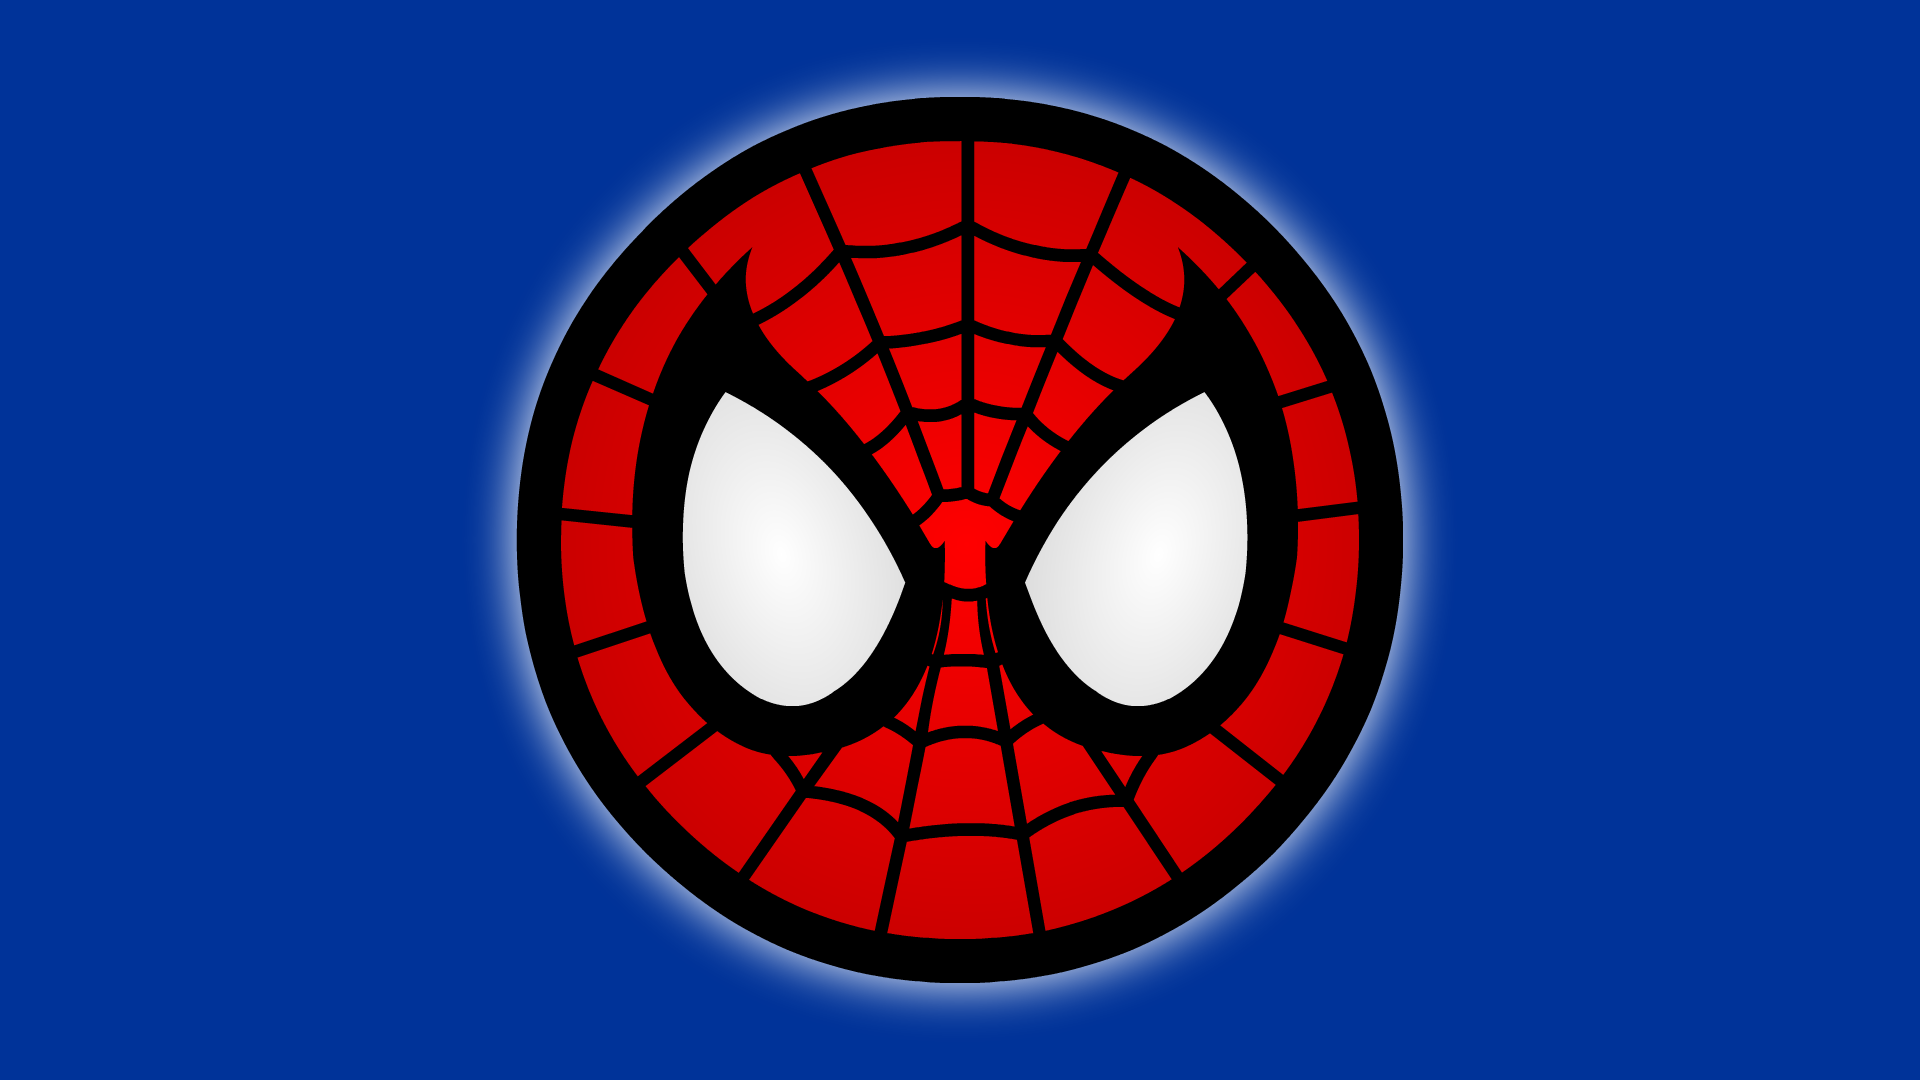 Spider-Man's Mask Symbol by Yurtigo on DeviantArt